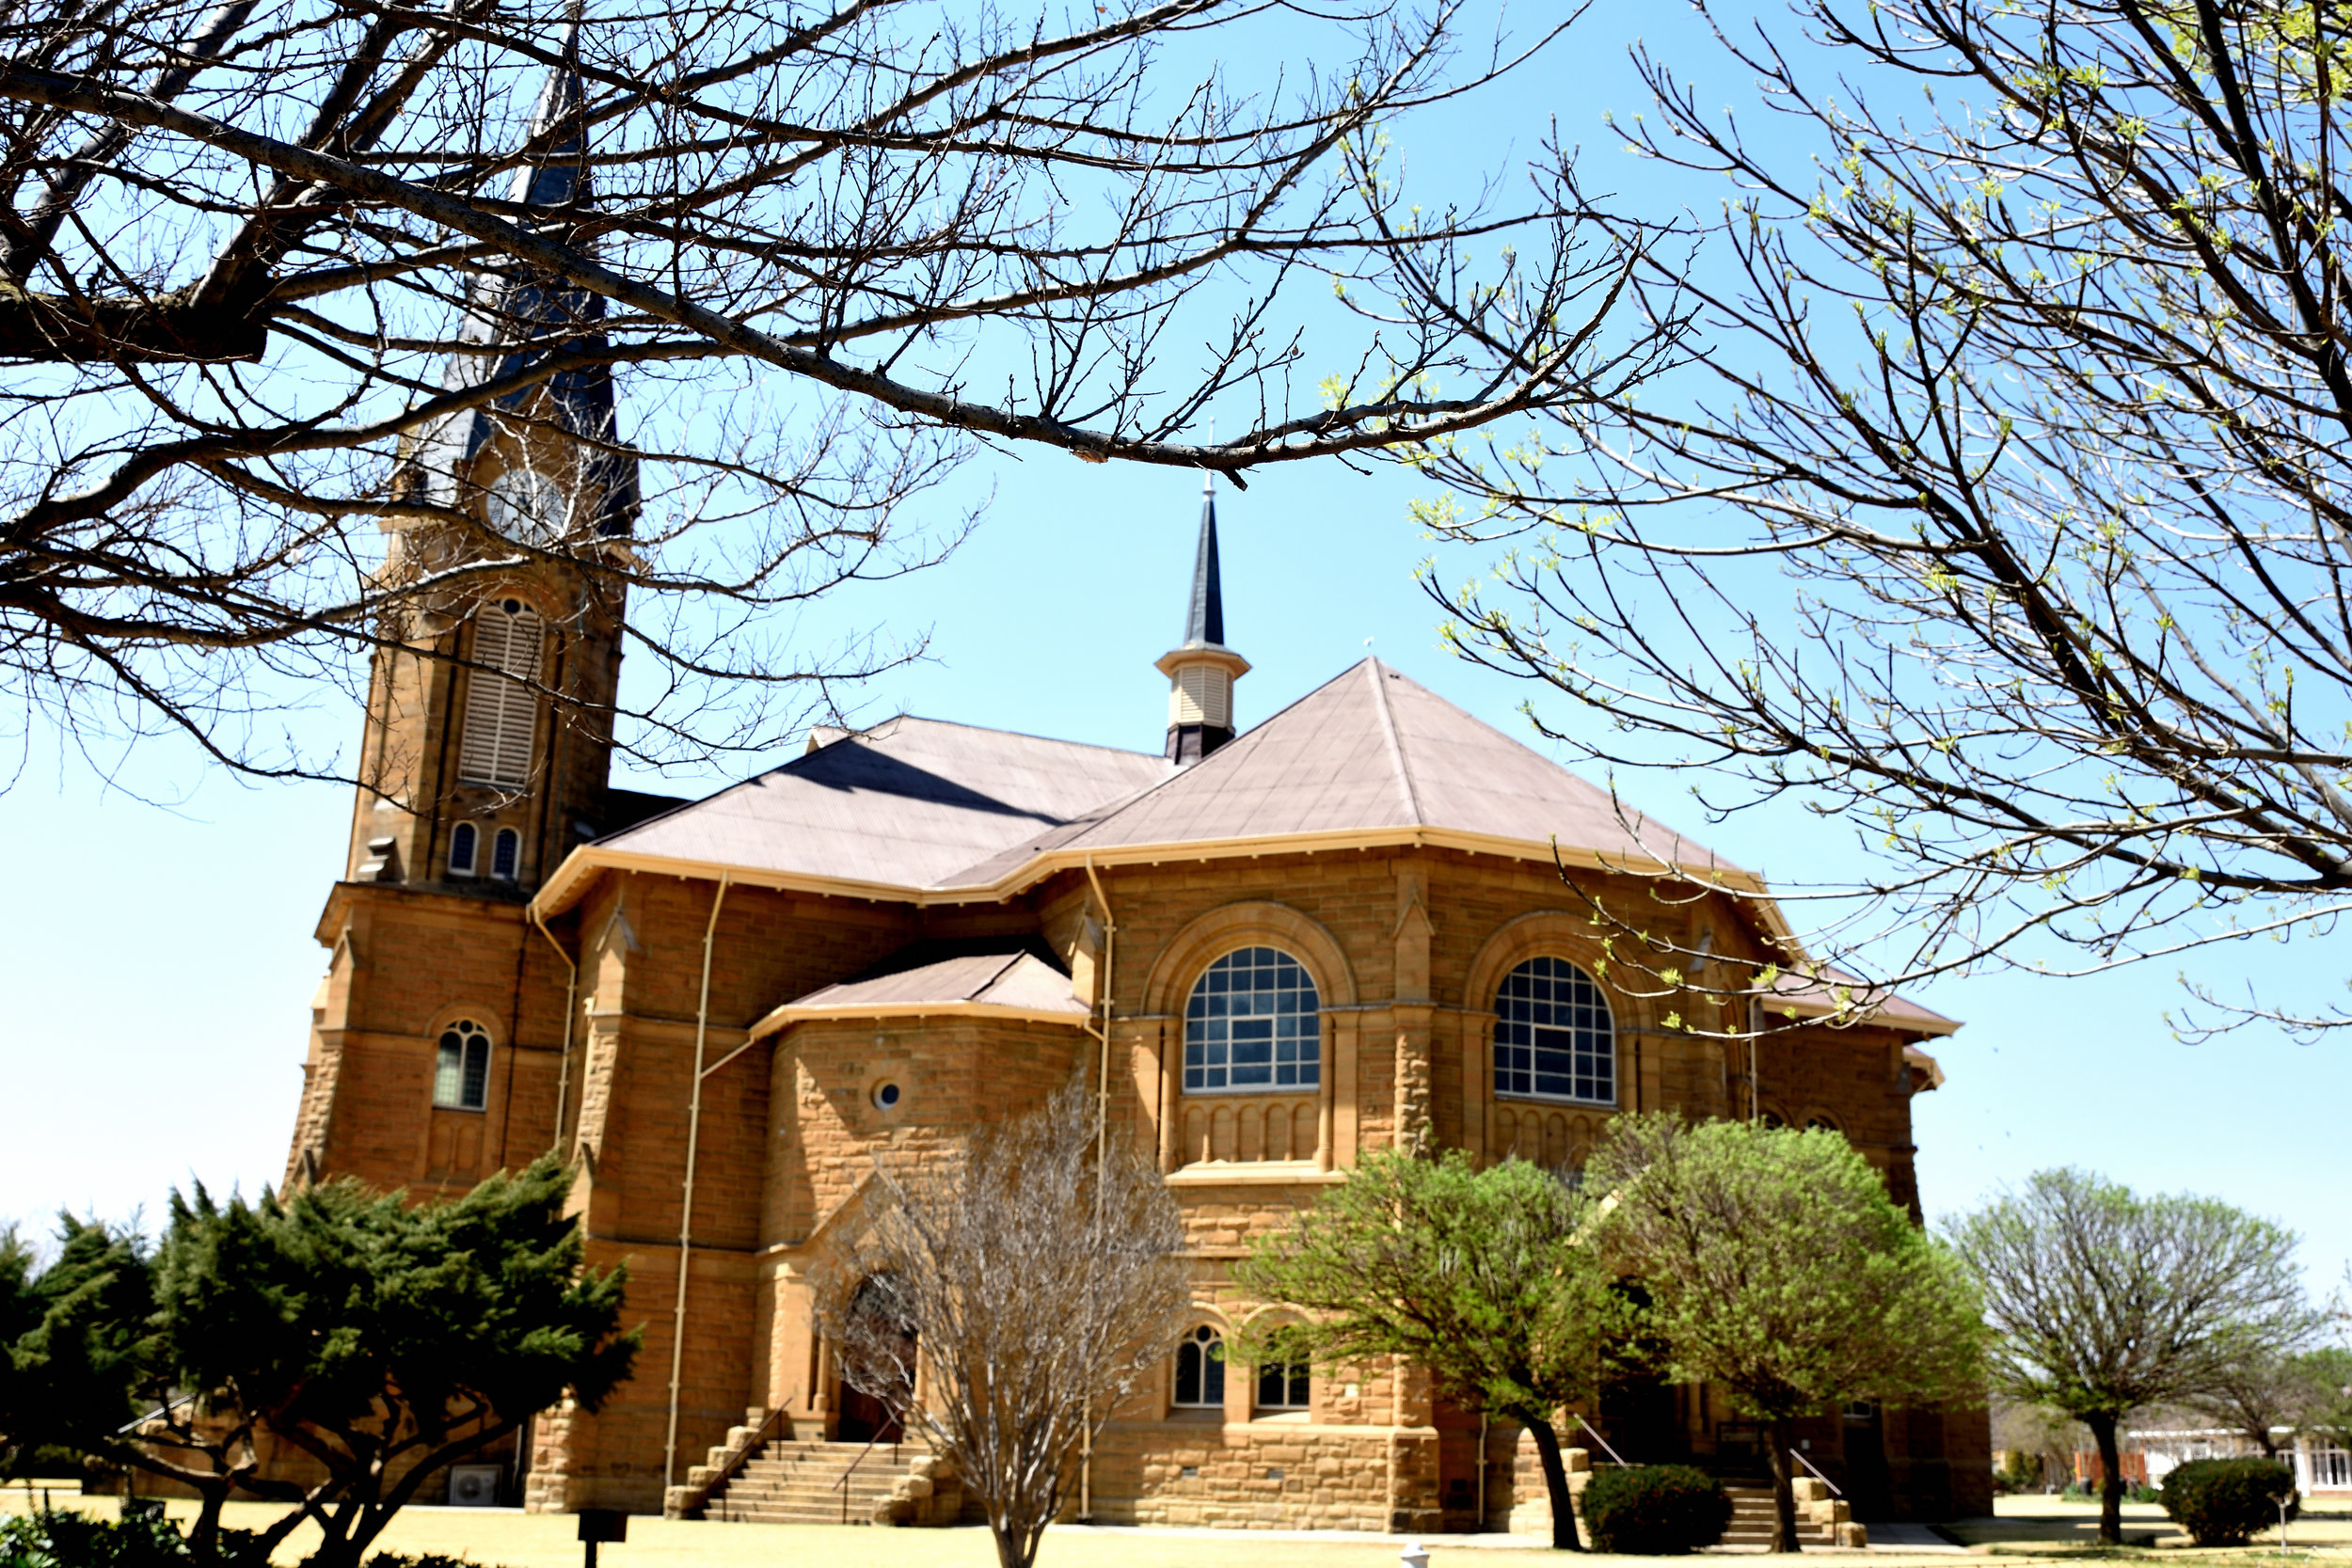 NG Kerk Warden Church in Warden, South Africa, September 2017